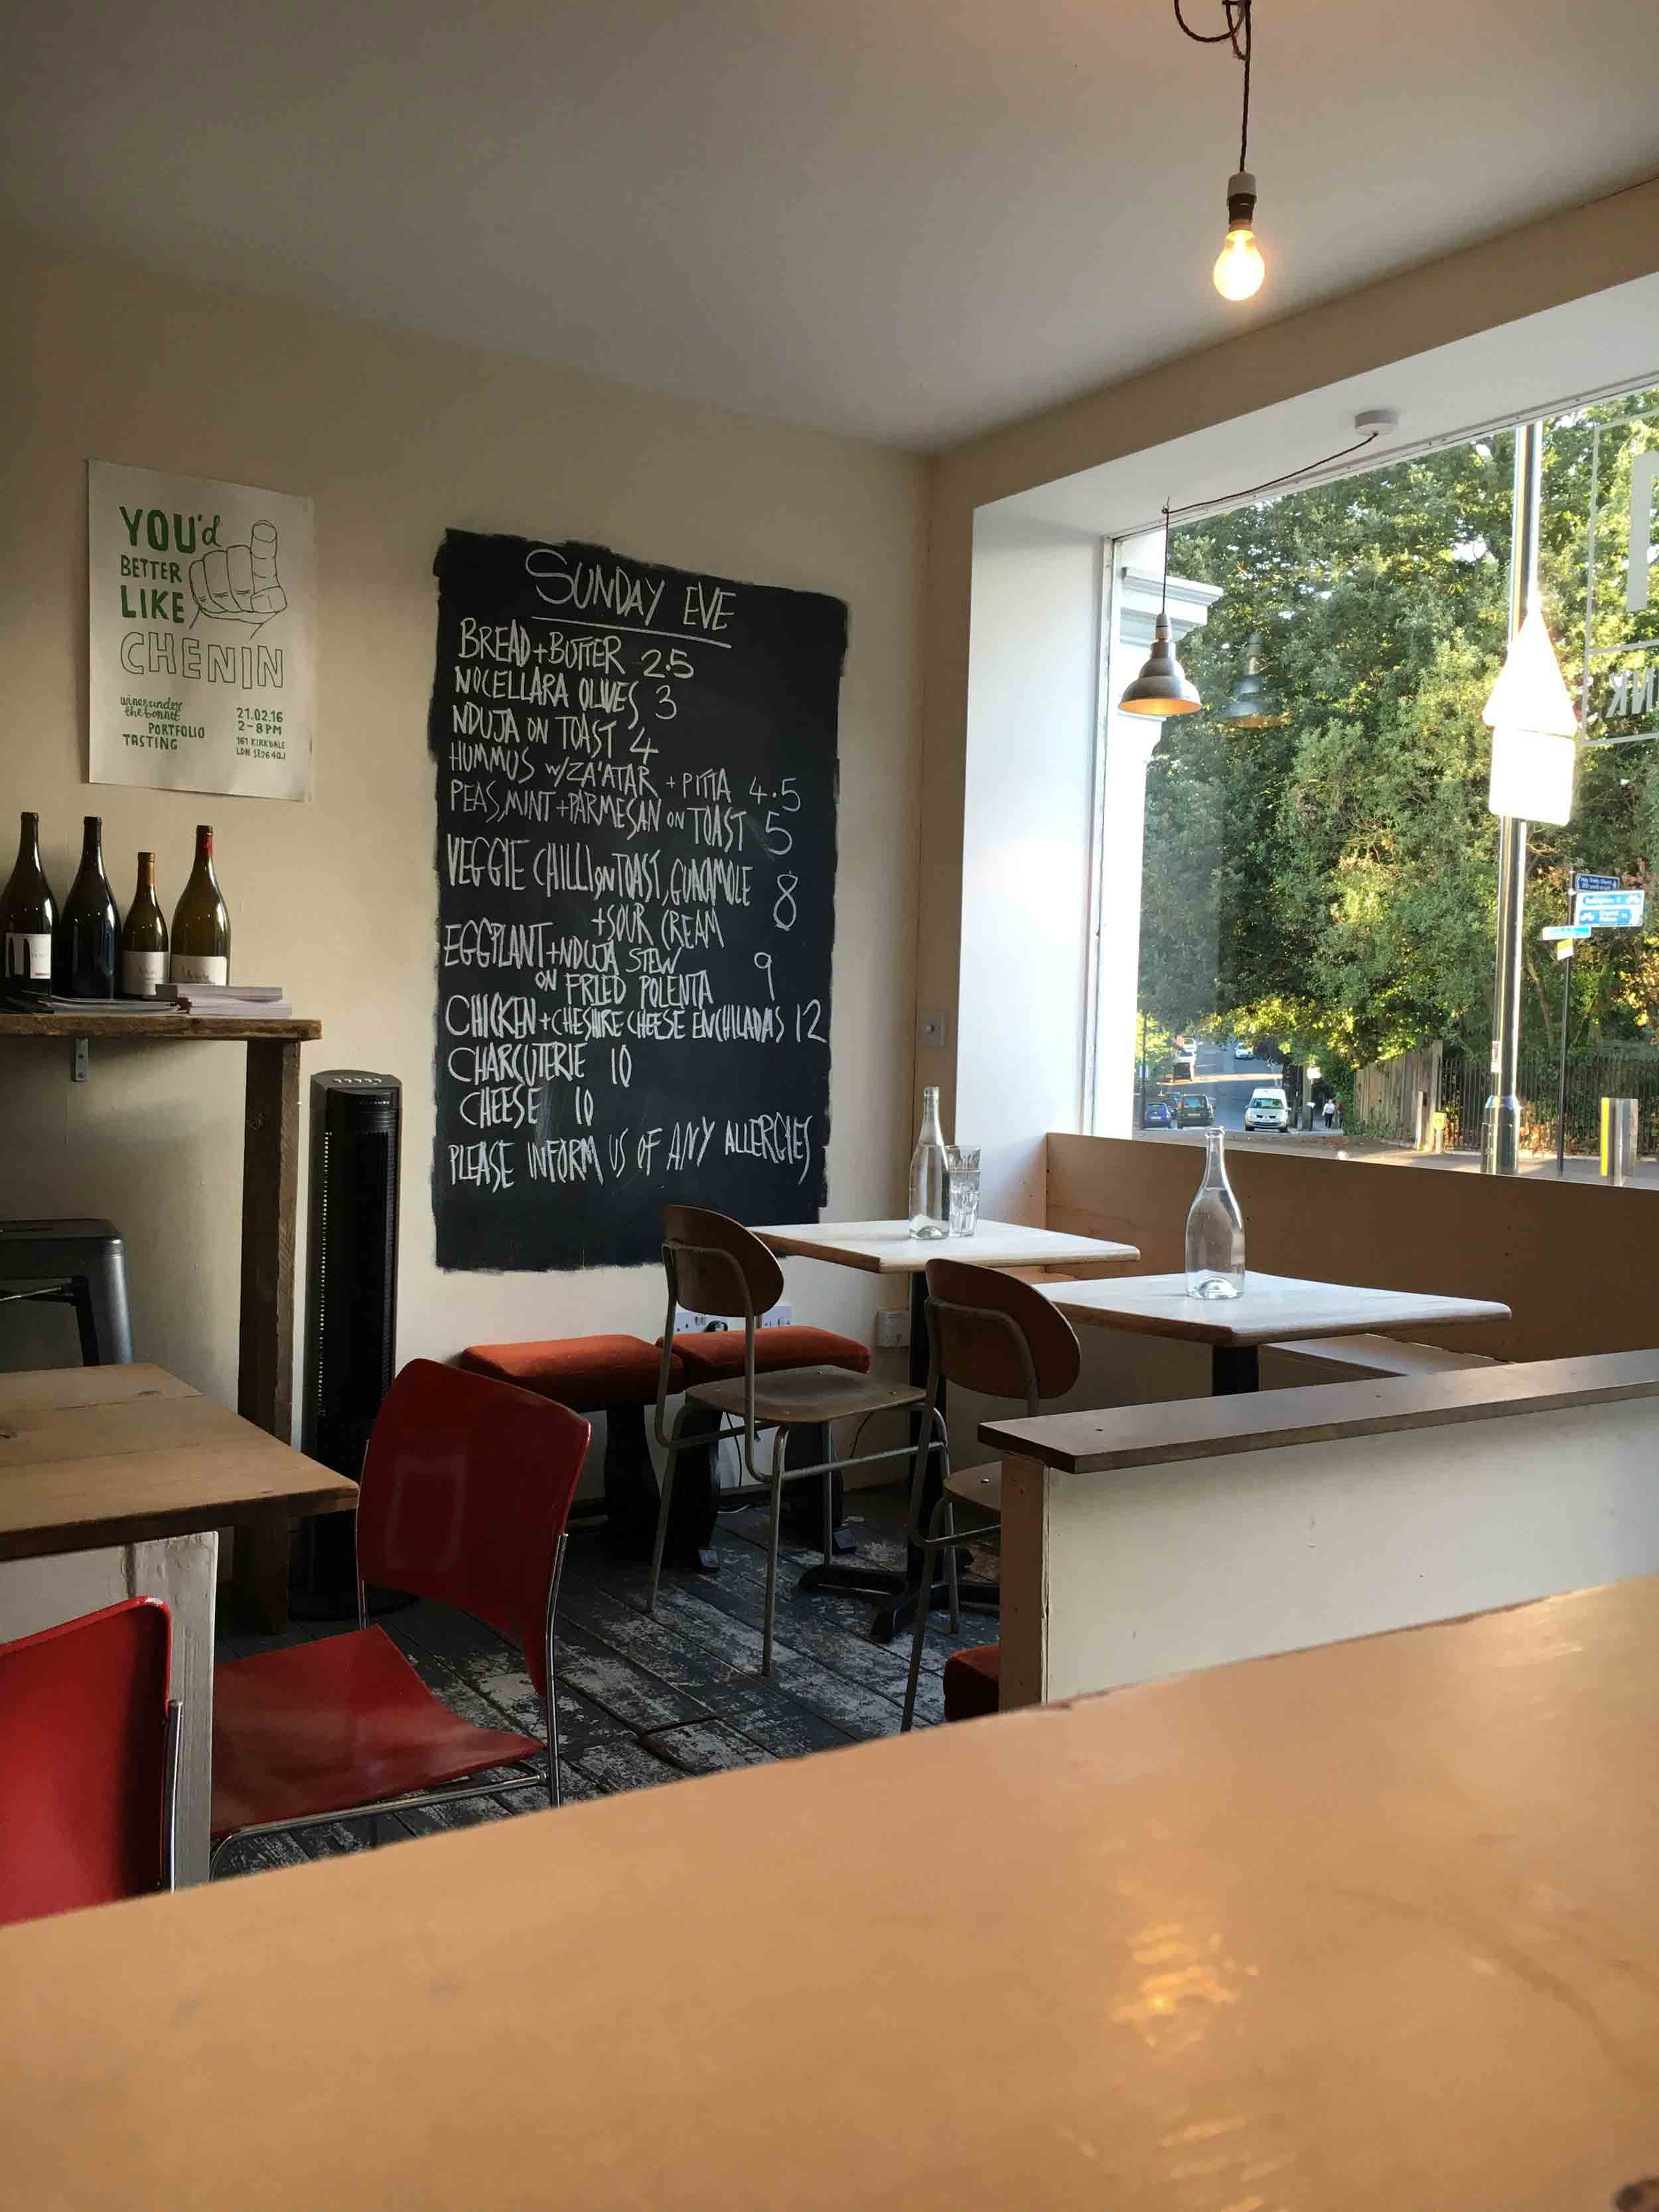 161 Kirkdale is a great little wine shop that also does breakfasts at the weekend.